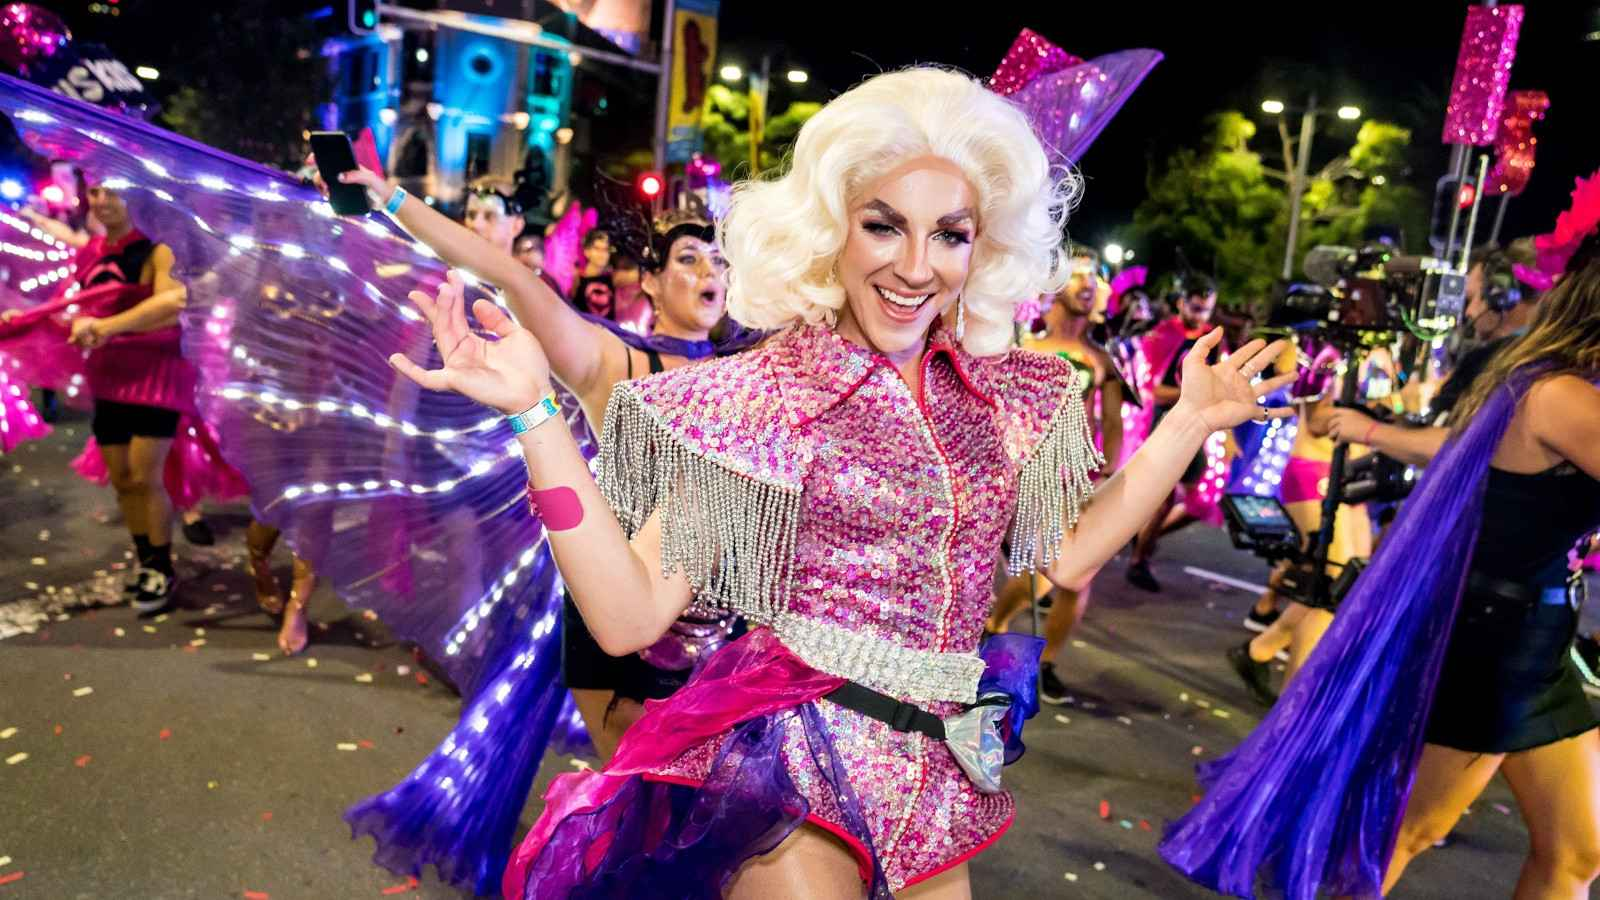 Sydney gay mardi gras is one of the biggest gay events in the world